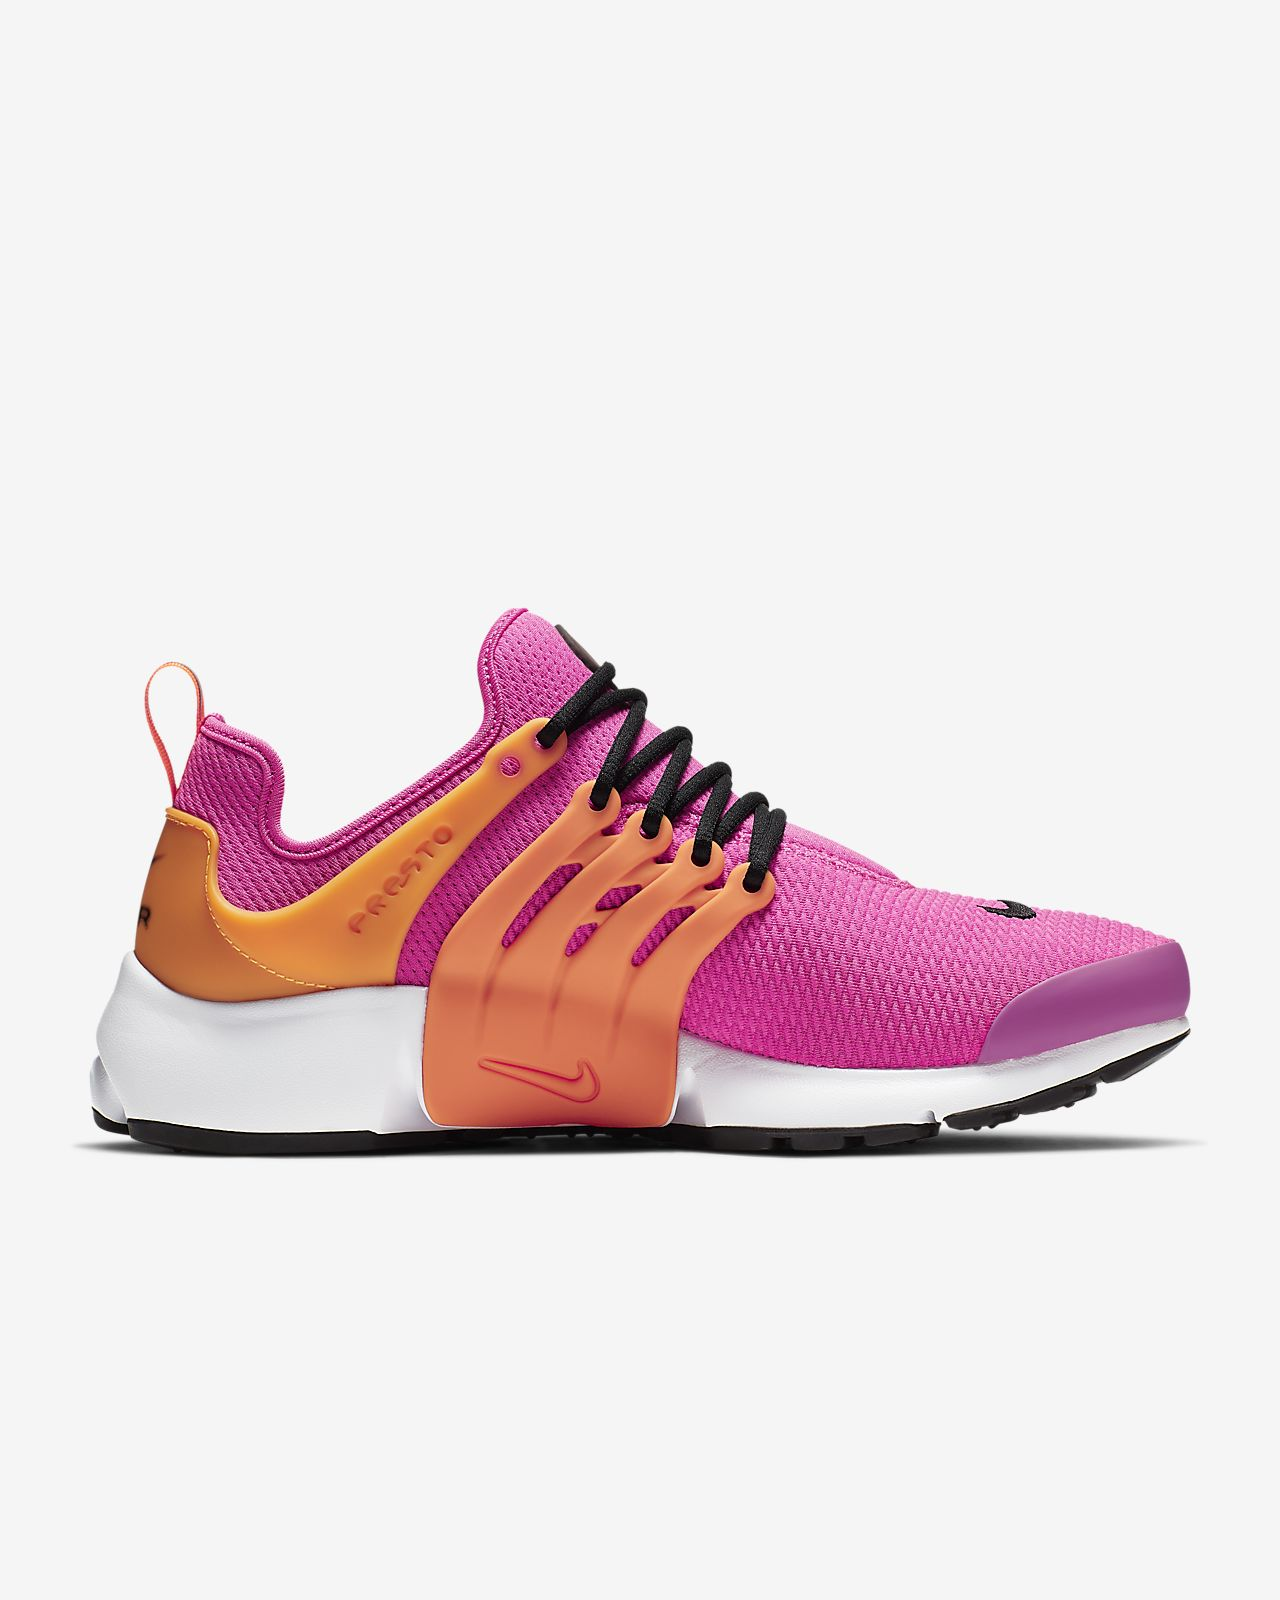 watch 8ecf8 5101d ... Nike Air Presto Women s Shoe